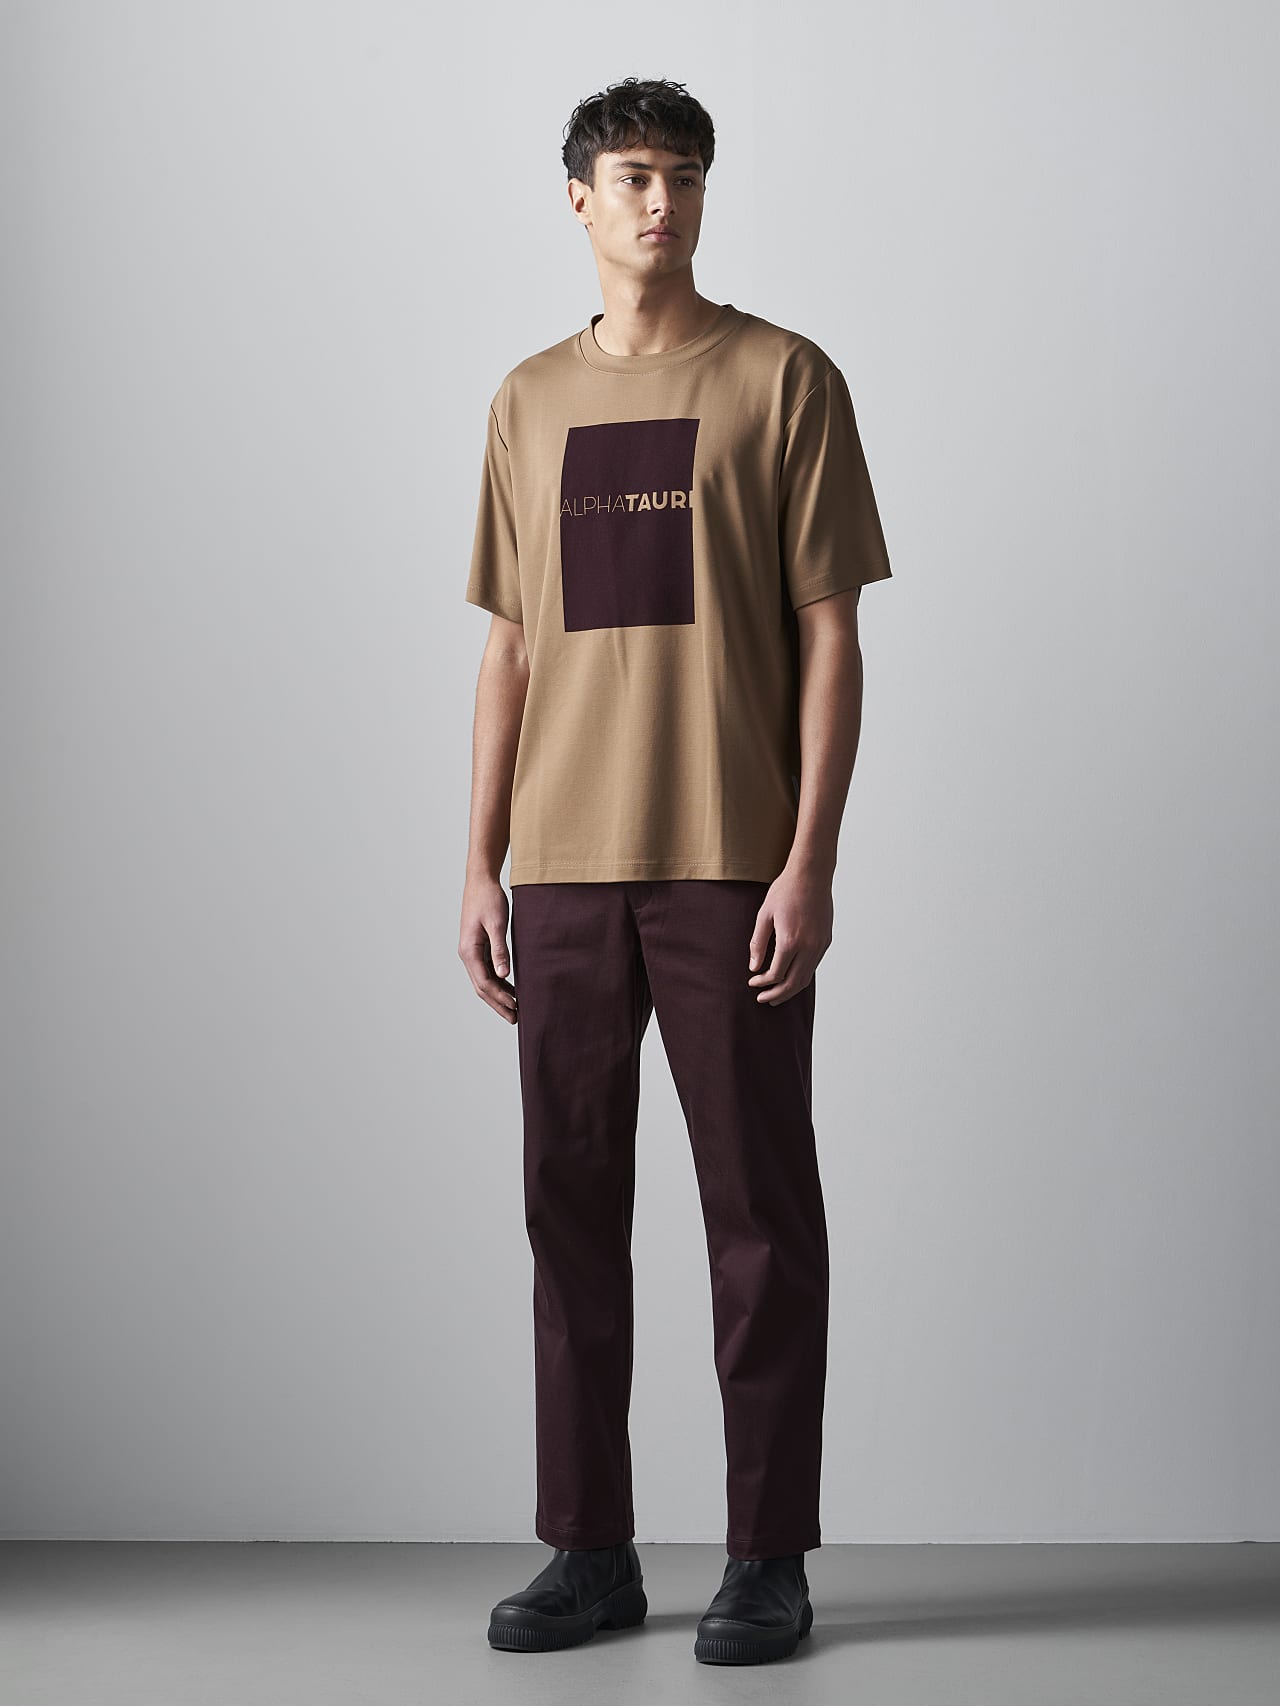 JAHEV V1.Y5.02 Relaxed Logo T-Shirt gold Front Alpha Tauri